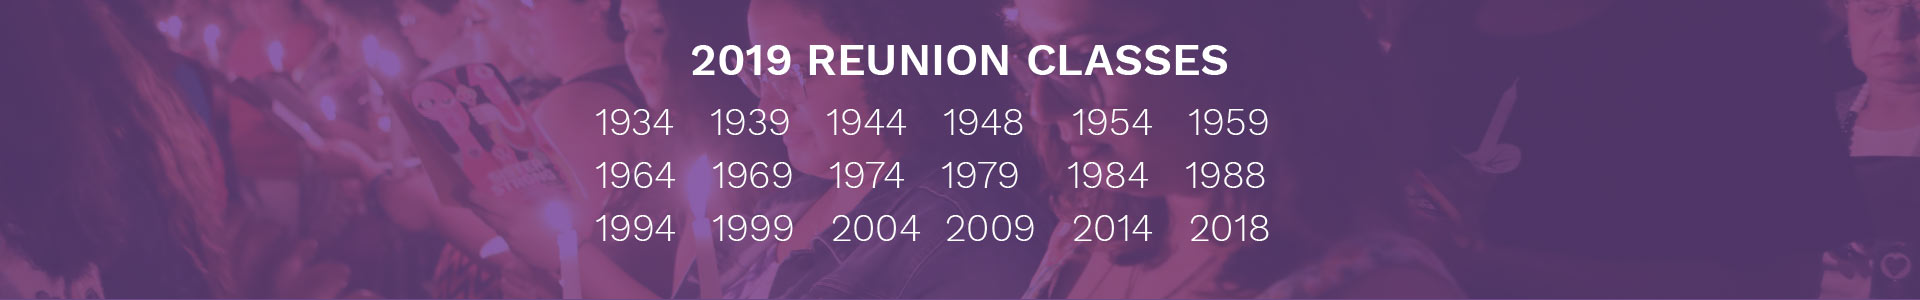 The Reunion classes: 1934, 1939, 1944, 1948, 1954, 1959, 1964, 1969, 1974, 1979, 1984, 1988, 1994, 1999, 2004, 2009, 2014, 2018